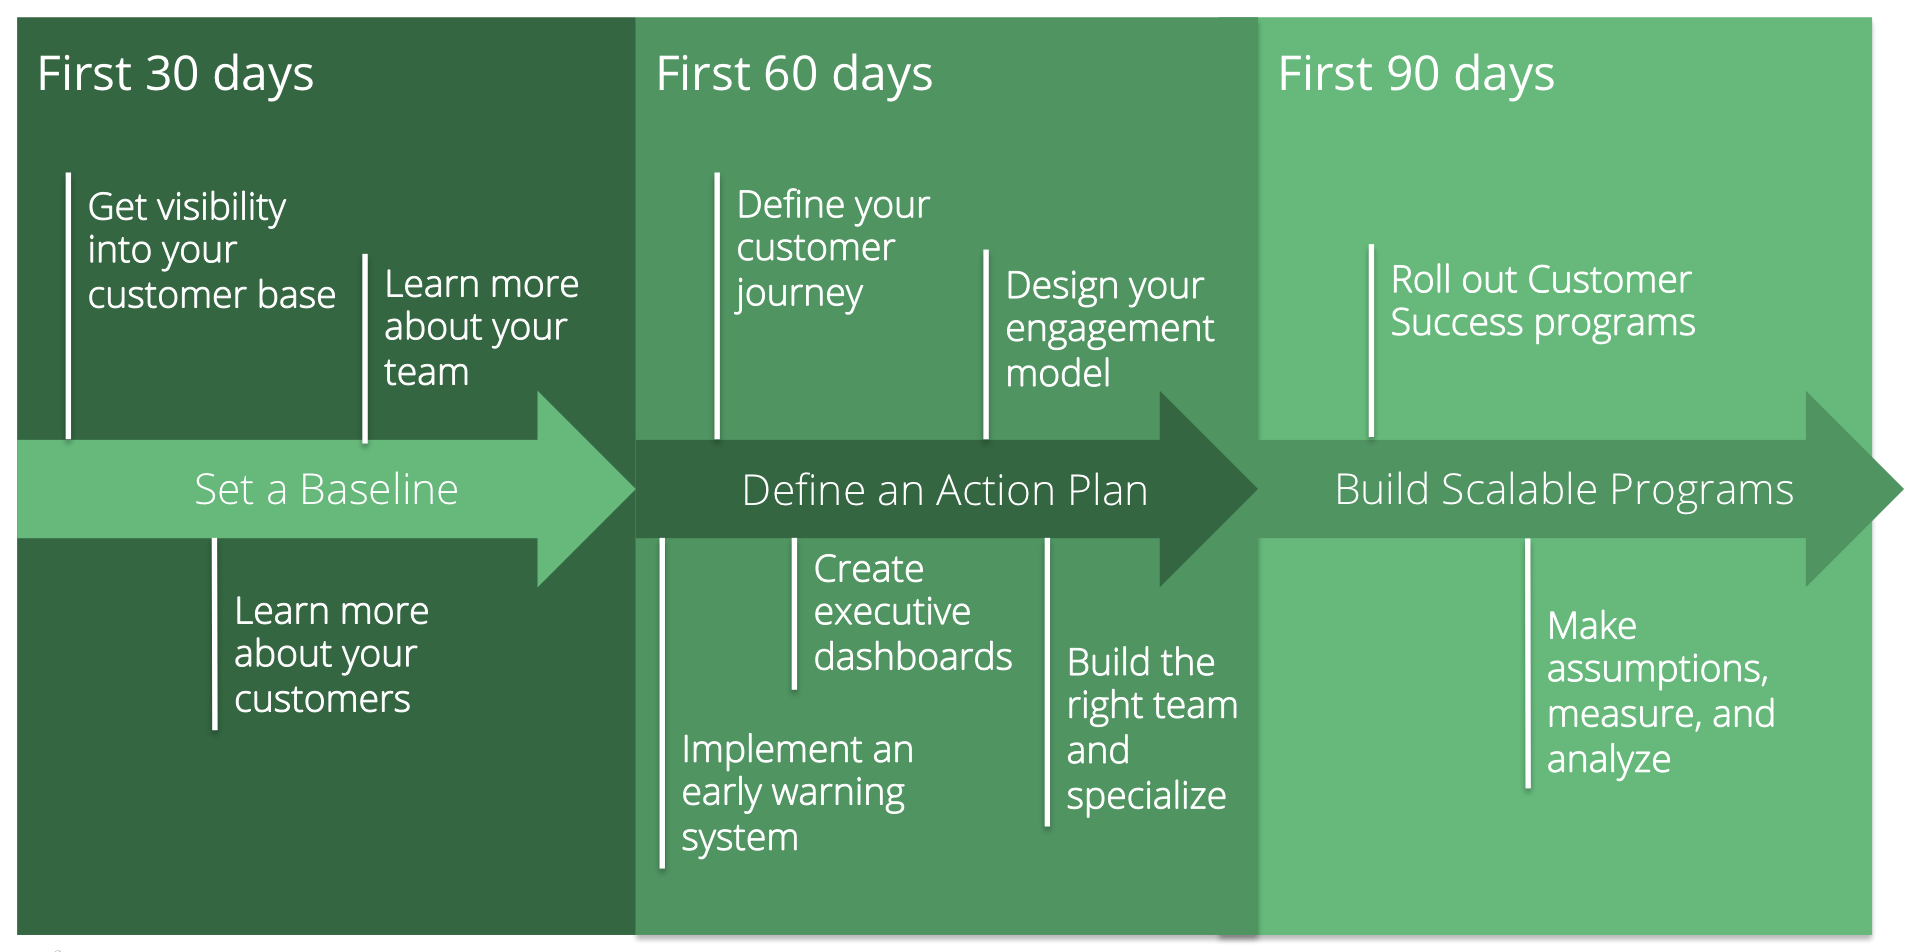 How To Write A 30 Day Action Plan For Employee